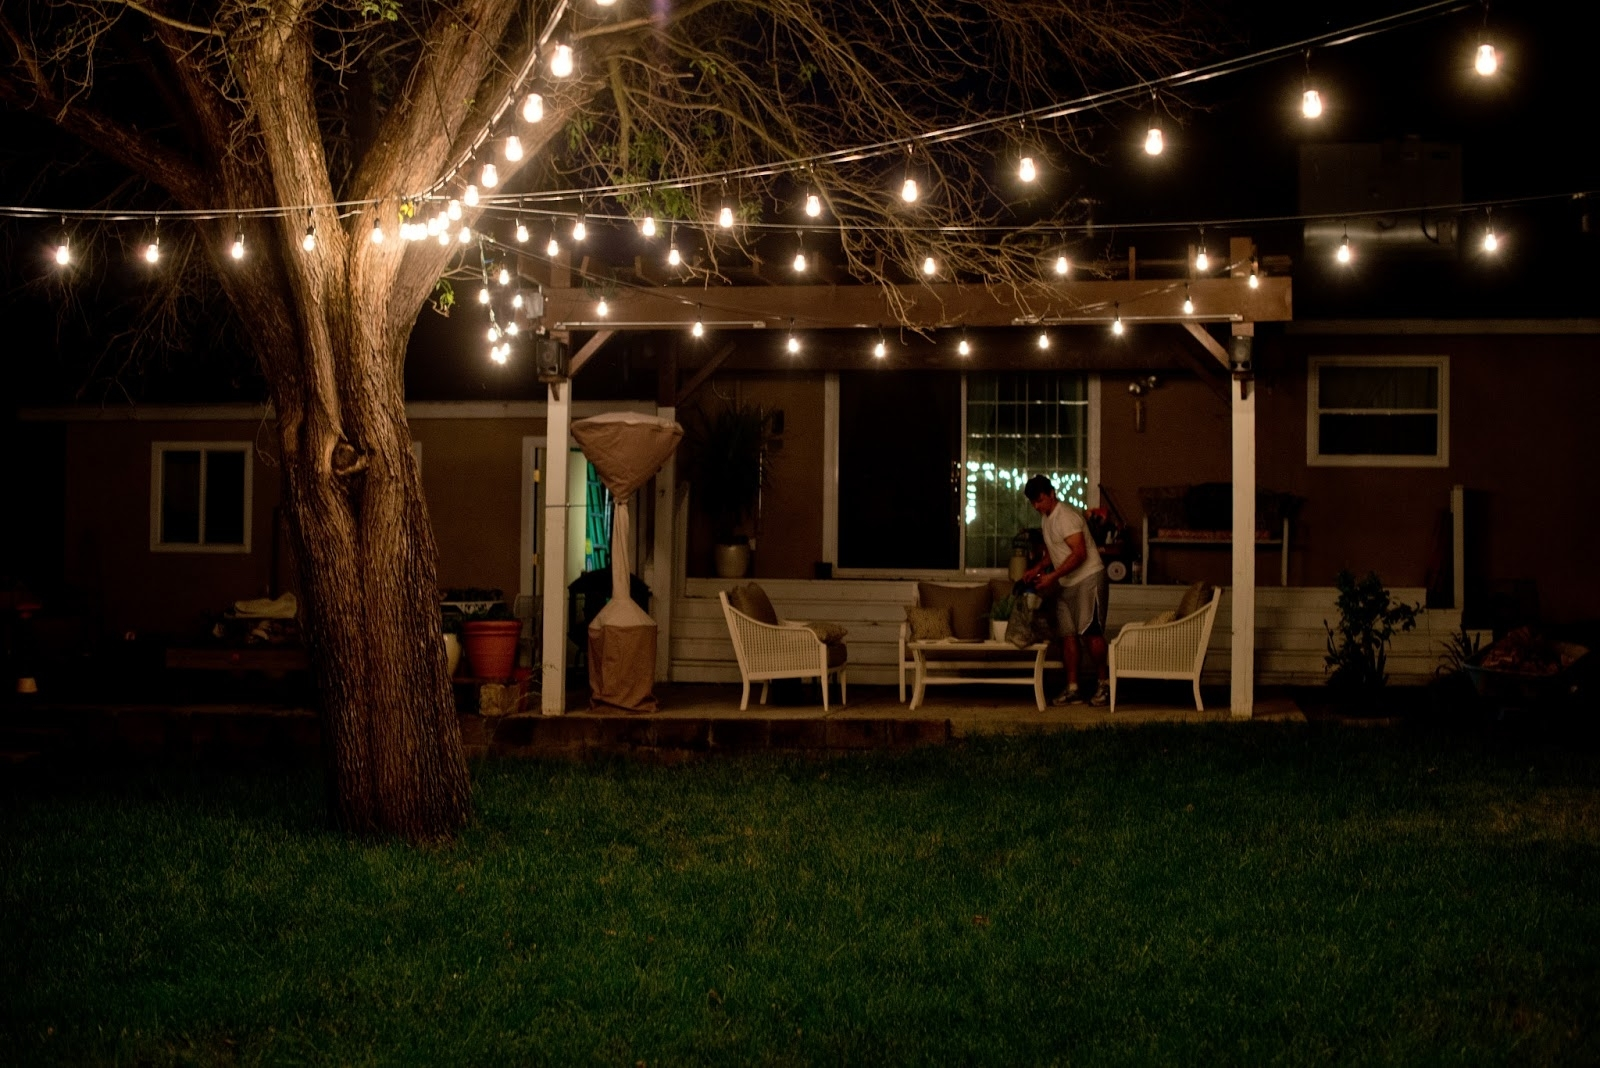 Lighting: Pretty Outdoor Hanging Lights For Outdoor Lighting Design In Well Known Vintage Outdoor Hanging Lights (View 11 of 20)